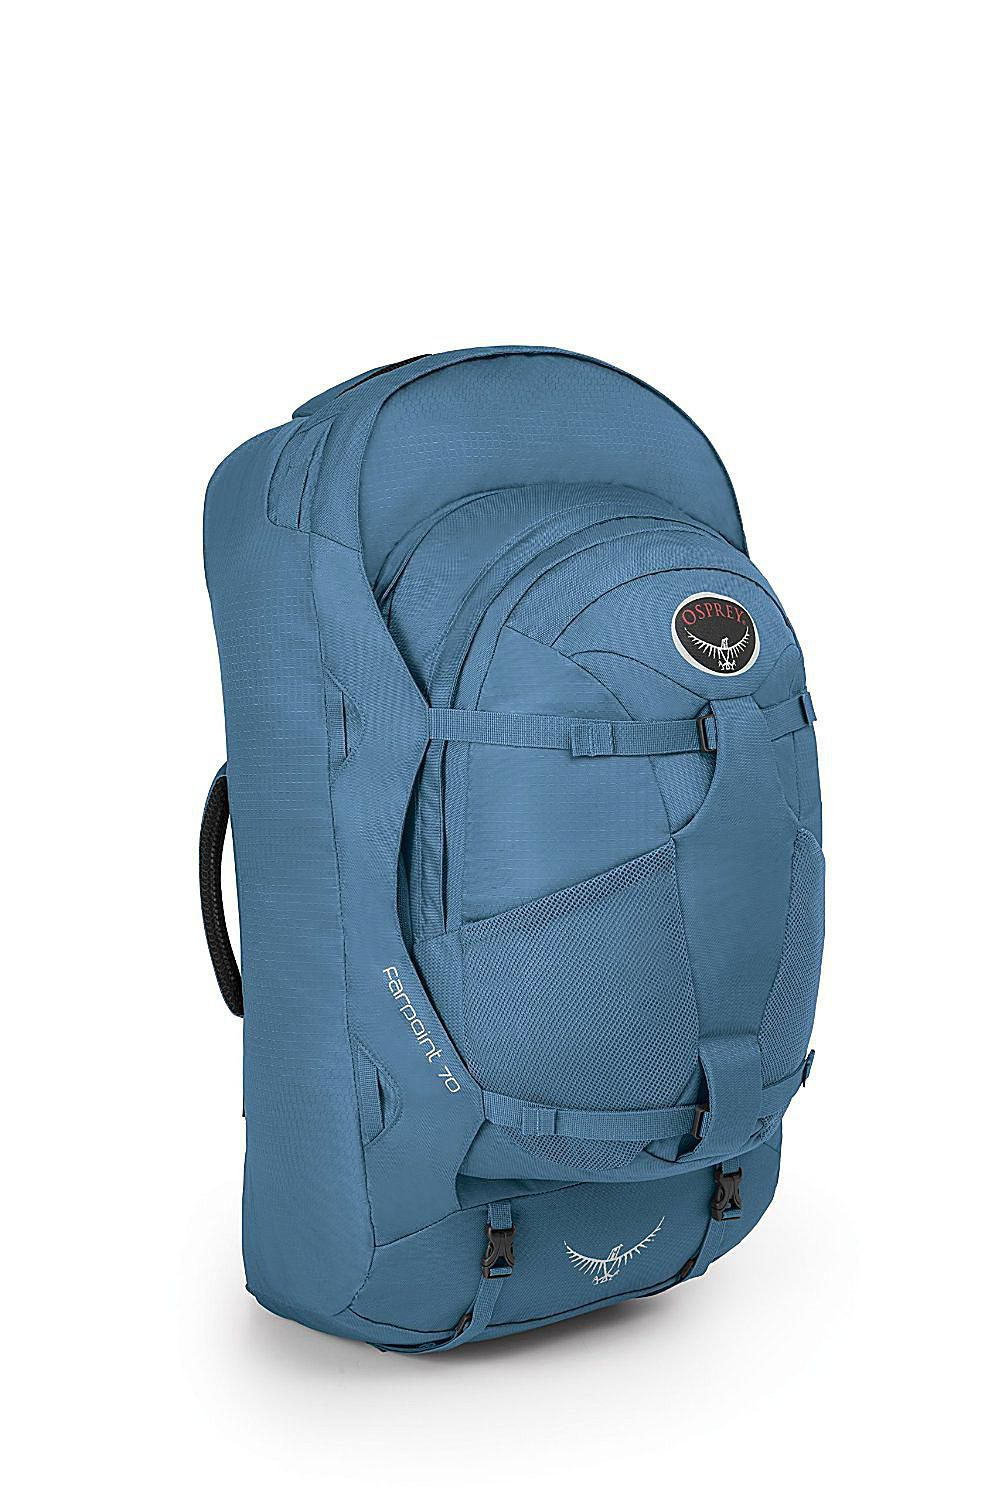 434bbd2cf6 Why the Osprey Farpoint 70 is the Best Travel Backpack